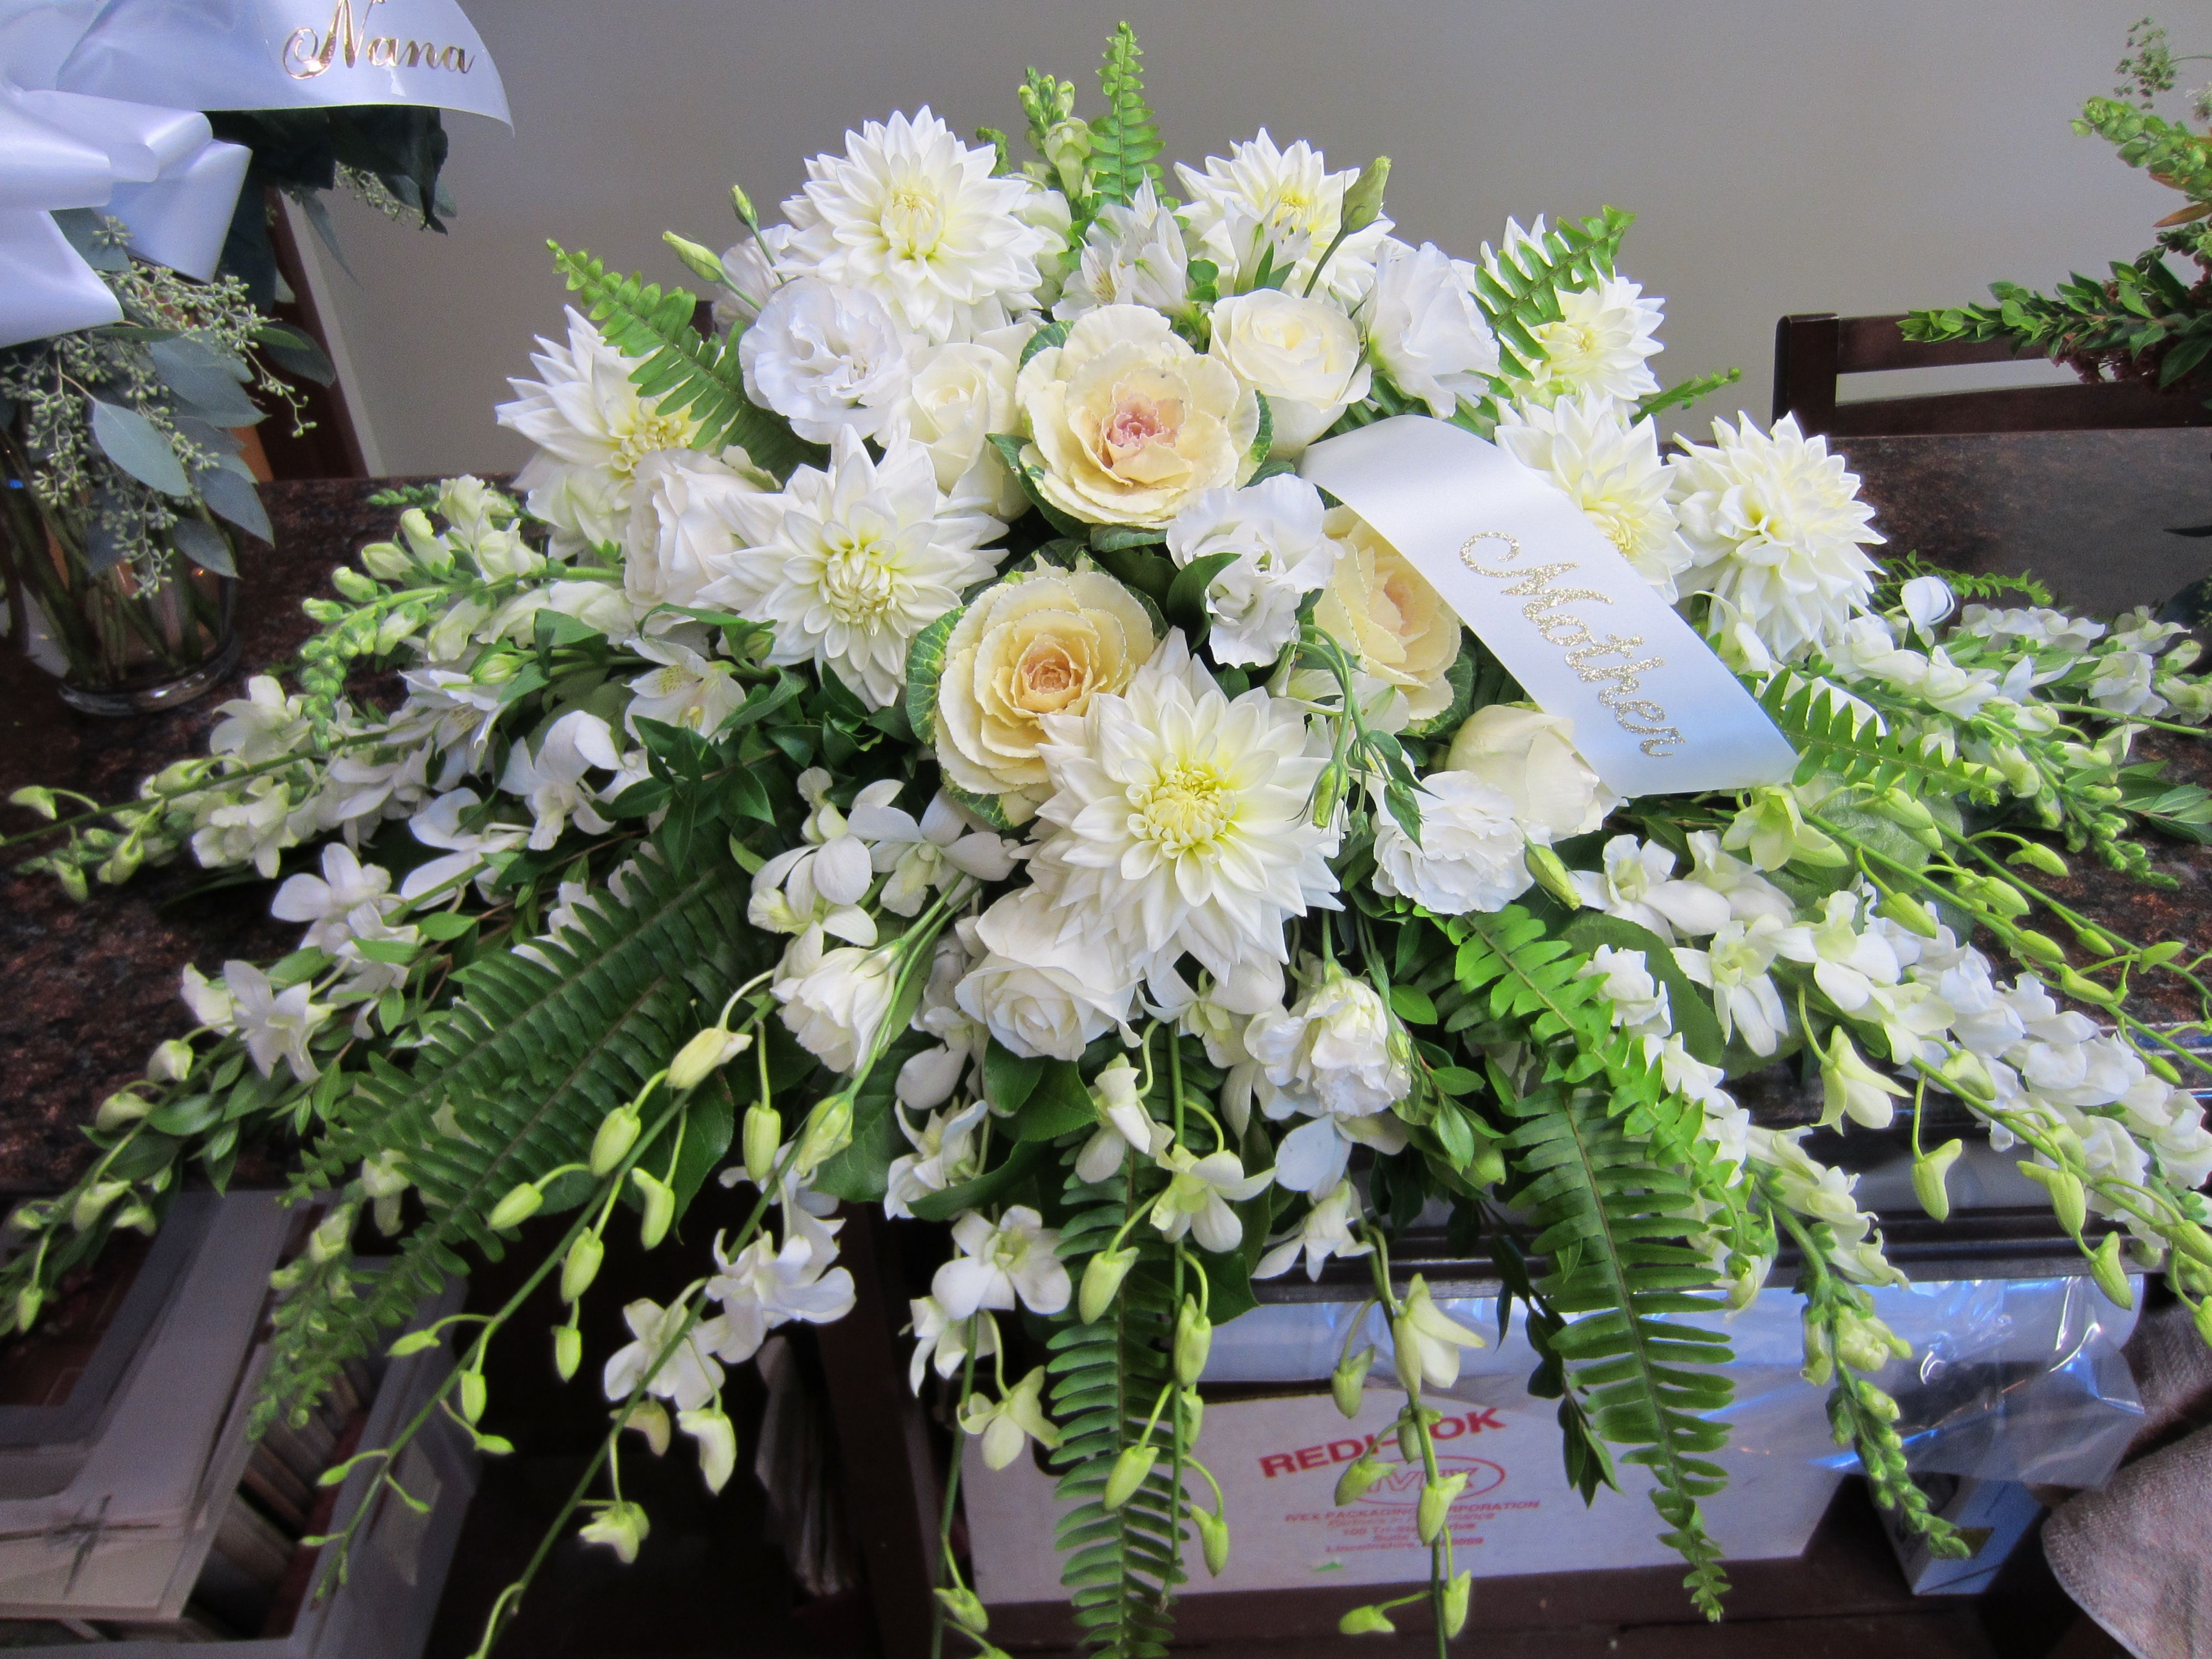 Shades of white flowers for the casket include orchids kale shades of white flowers for the casket include orchids kale dahlias and roses izmirmasajfo